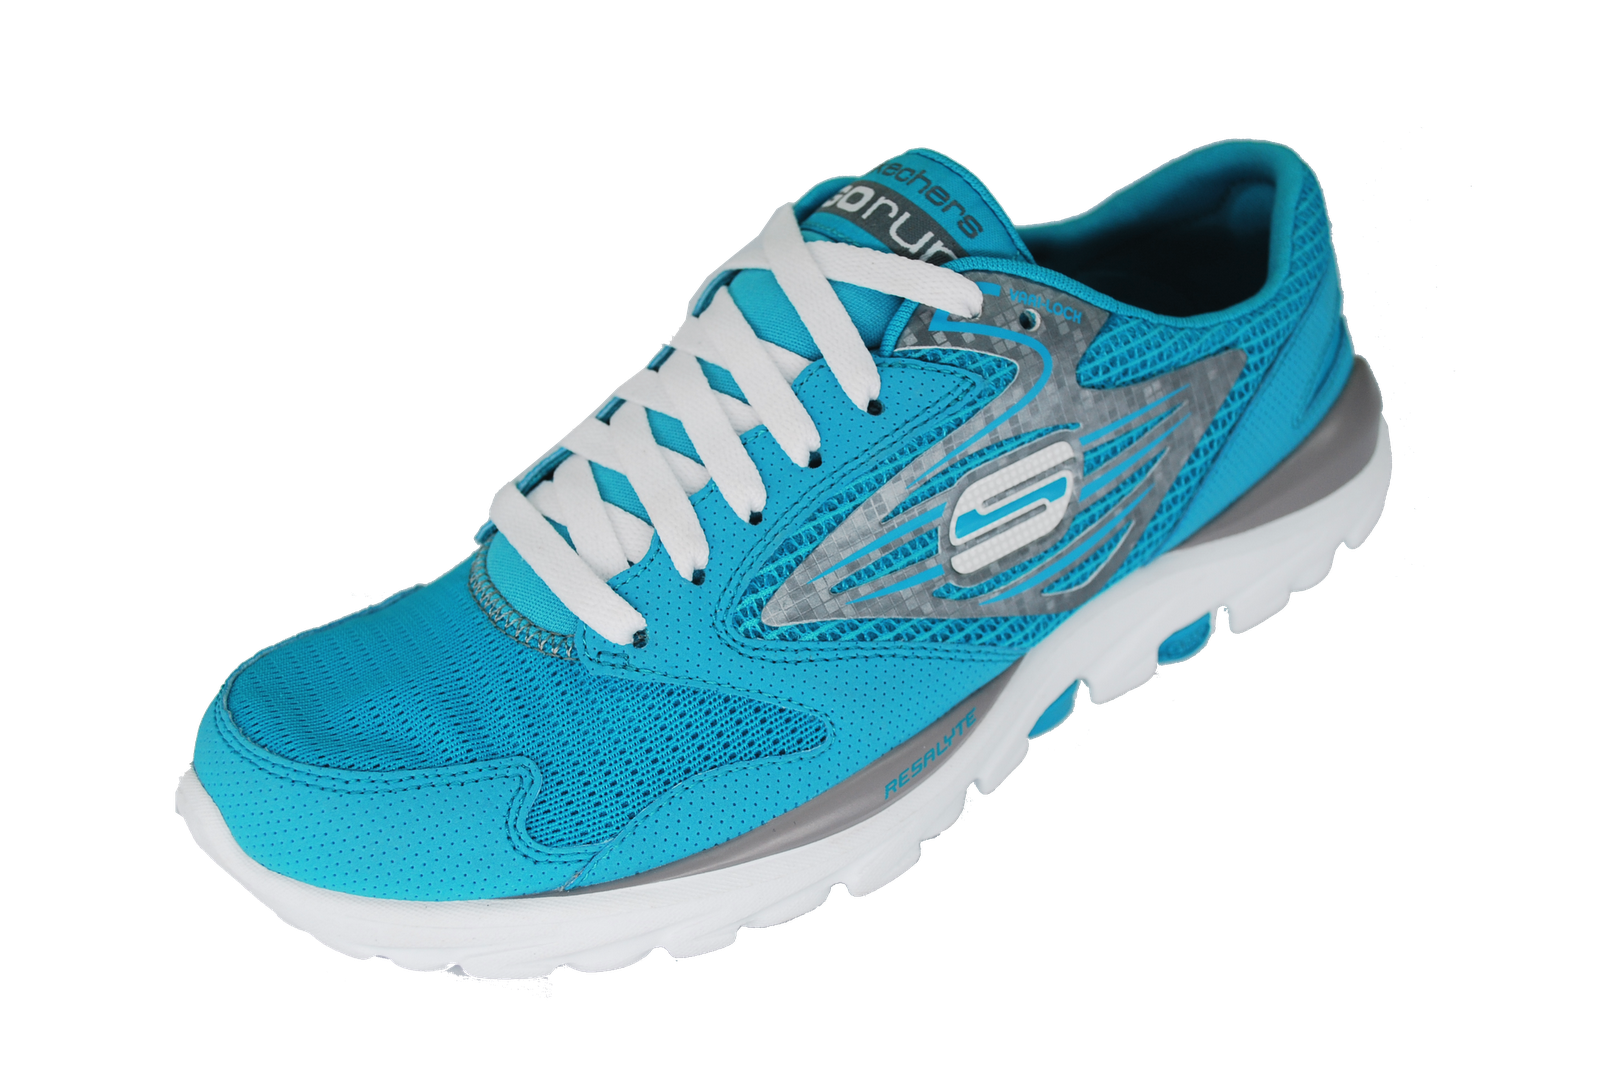 New shoe png. Running shoes free images